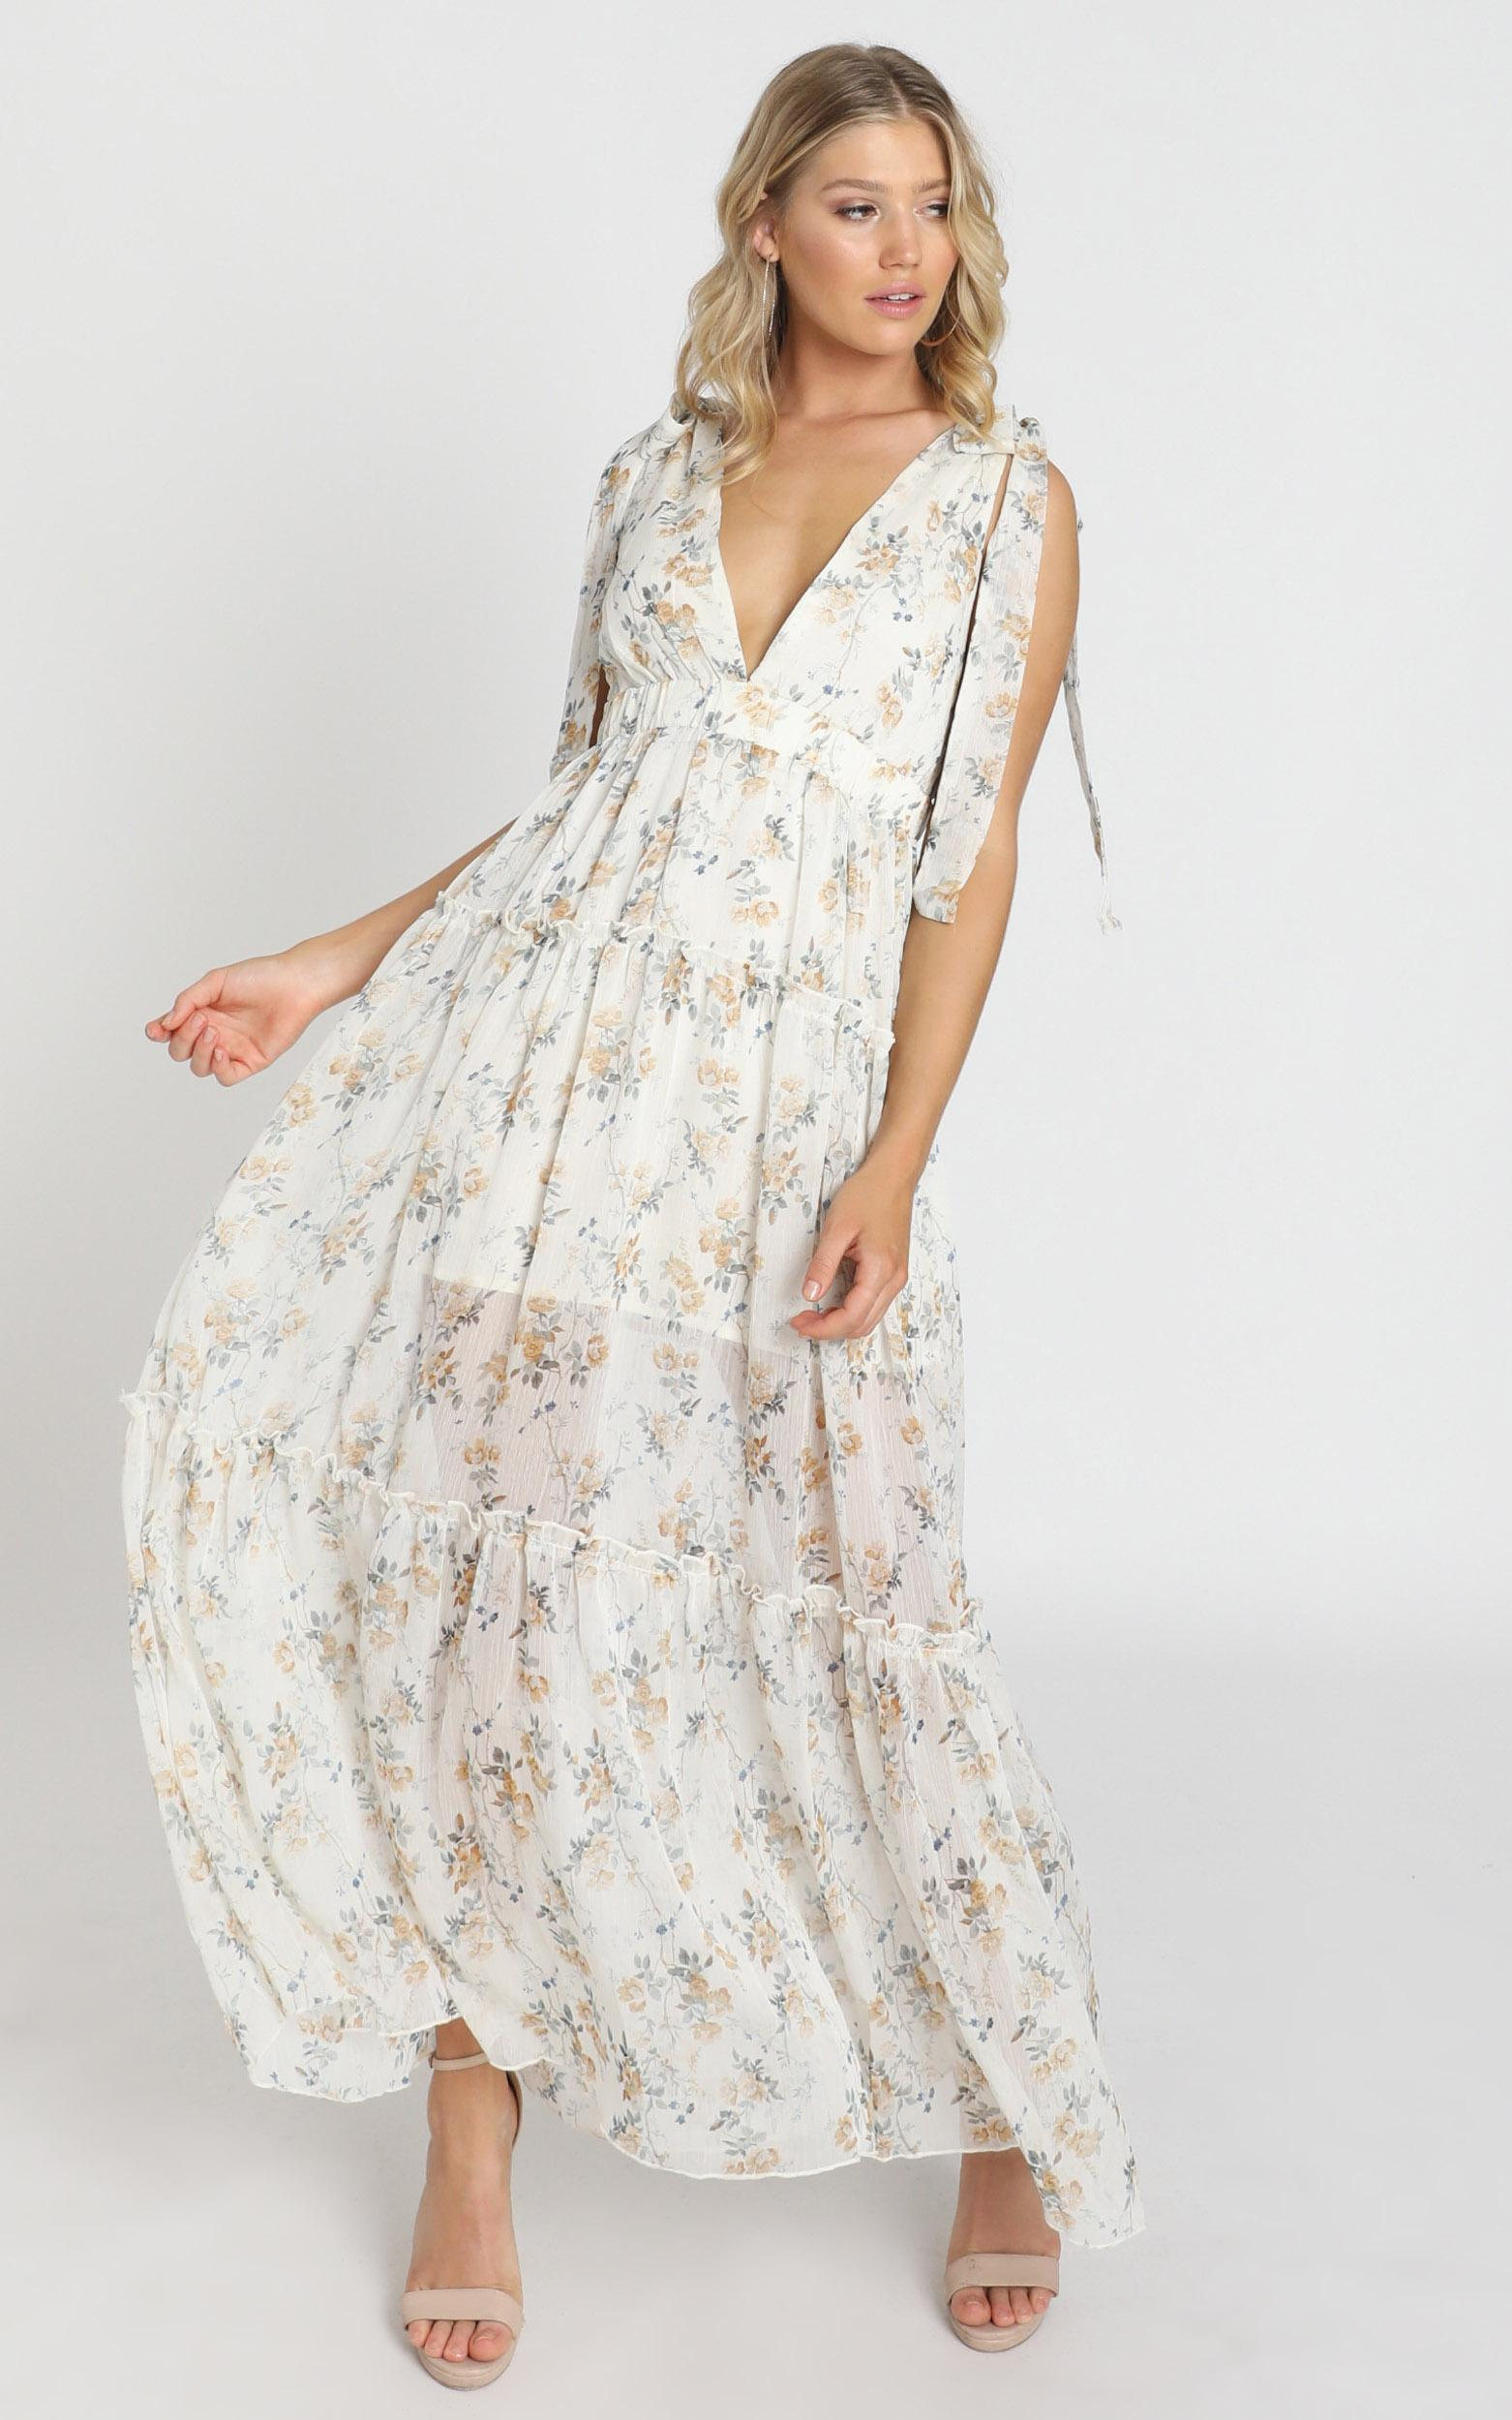 Indra Dress in cream floral - 8 (S), Cream, hi-res image number null